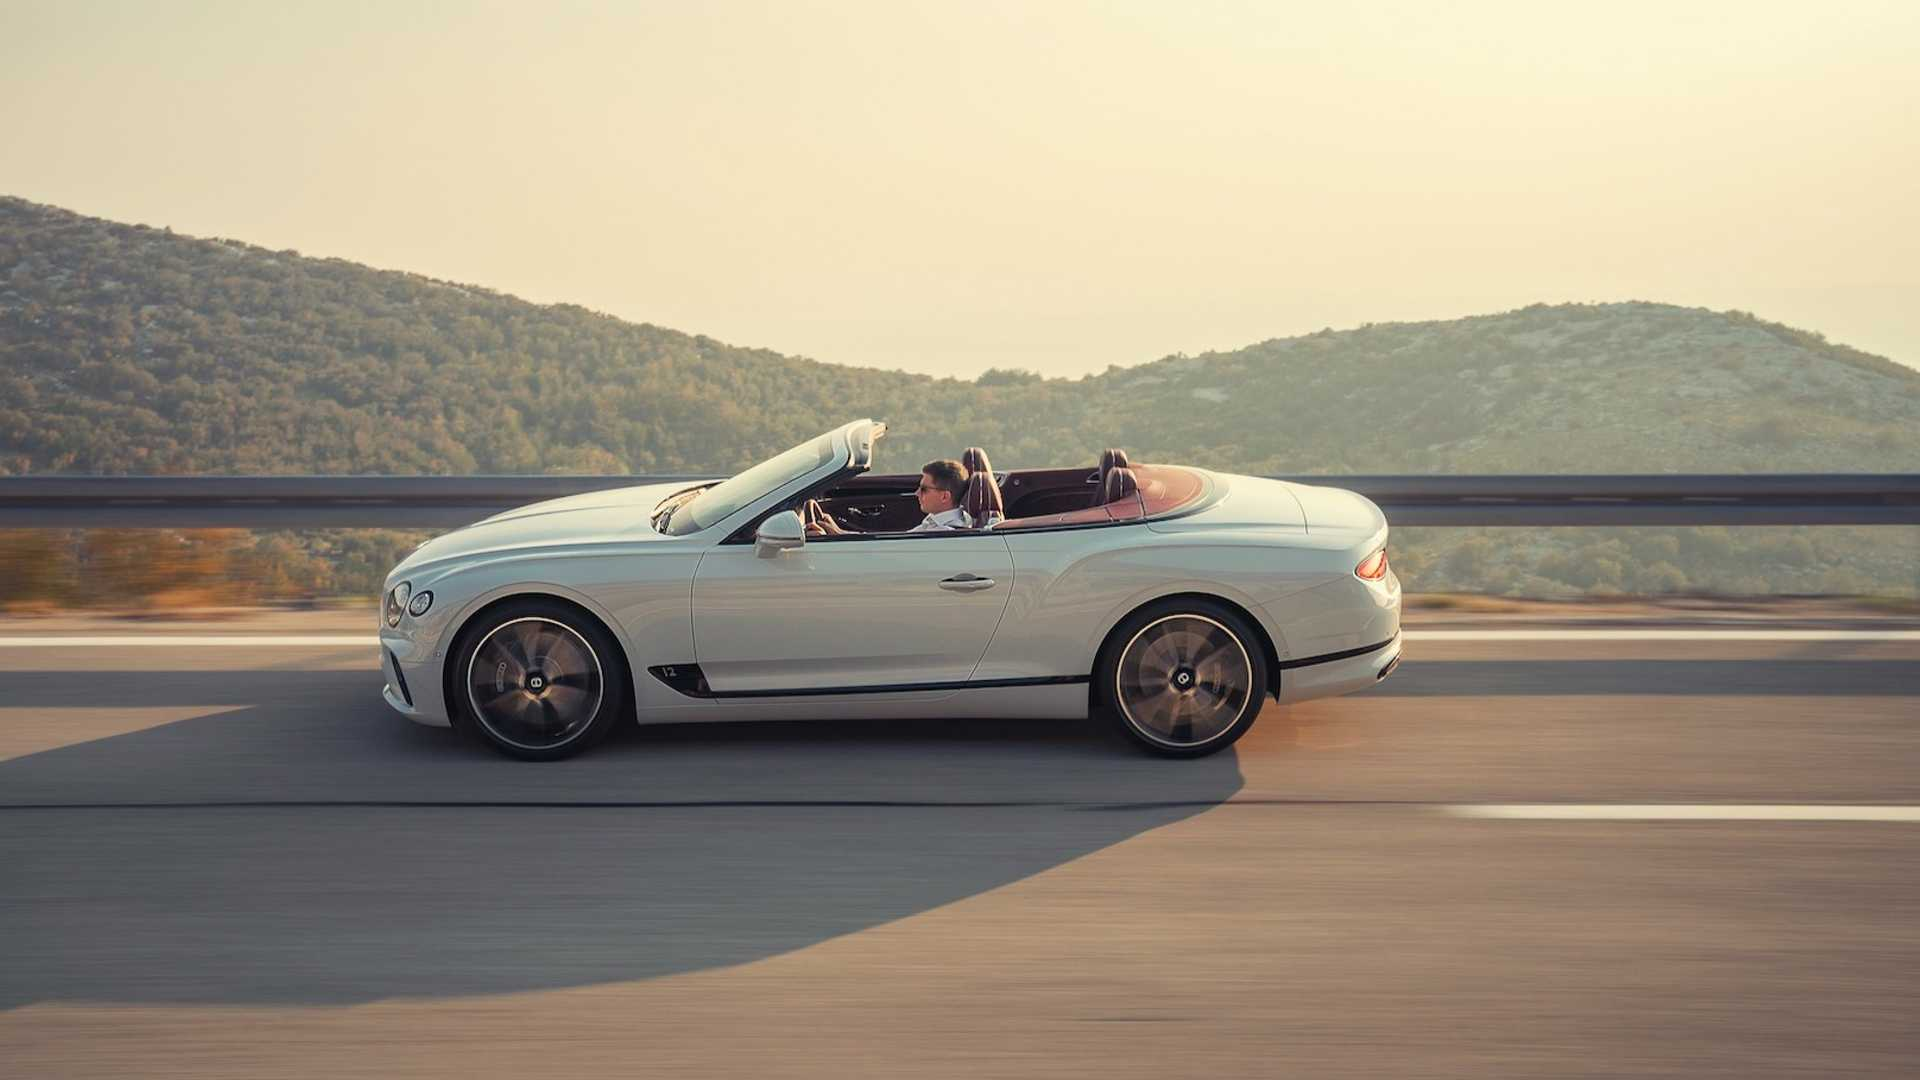 2019-bentley-continental-gt-convertible-unveiled-207-mph-luxury-droptop (9)